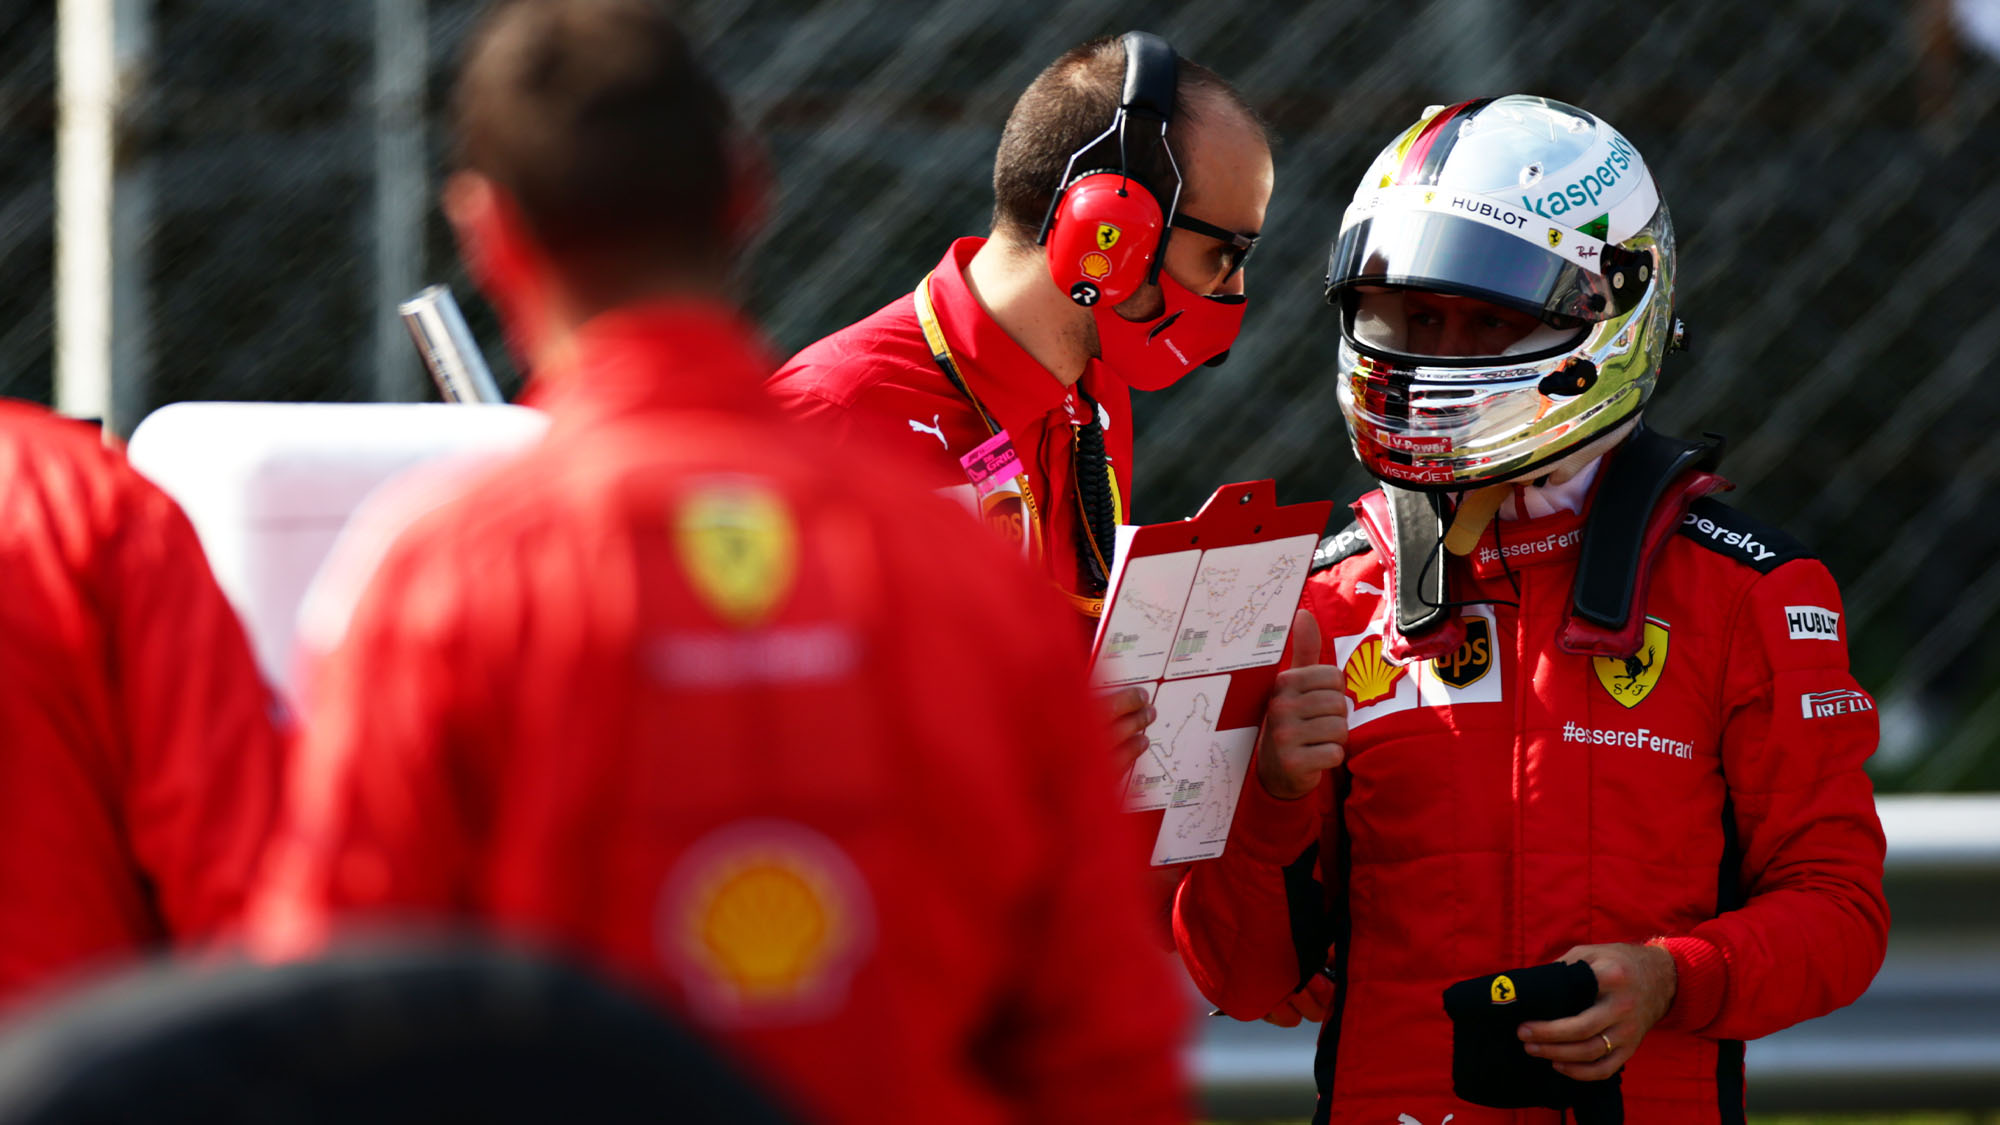 MONZA, ITALY - SEPTEMBER 06: Sebastian Vettel of Germany and Ferrari prepares to drive on the grid before the F1 Grand Prix of Italy at Autodromo di Monza on September 06, 2020 in Monza, Italy. (Photo by Peter Fox/Getty Images)